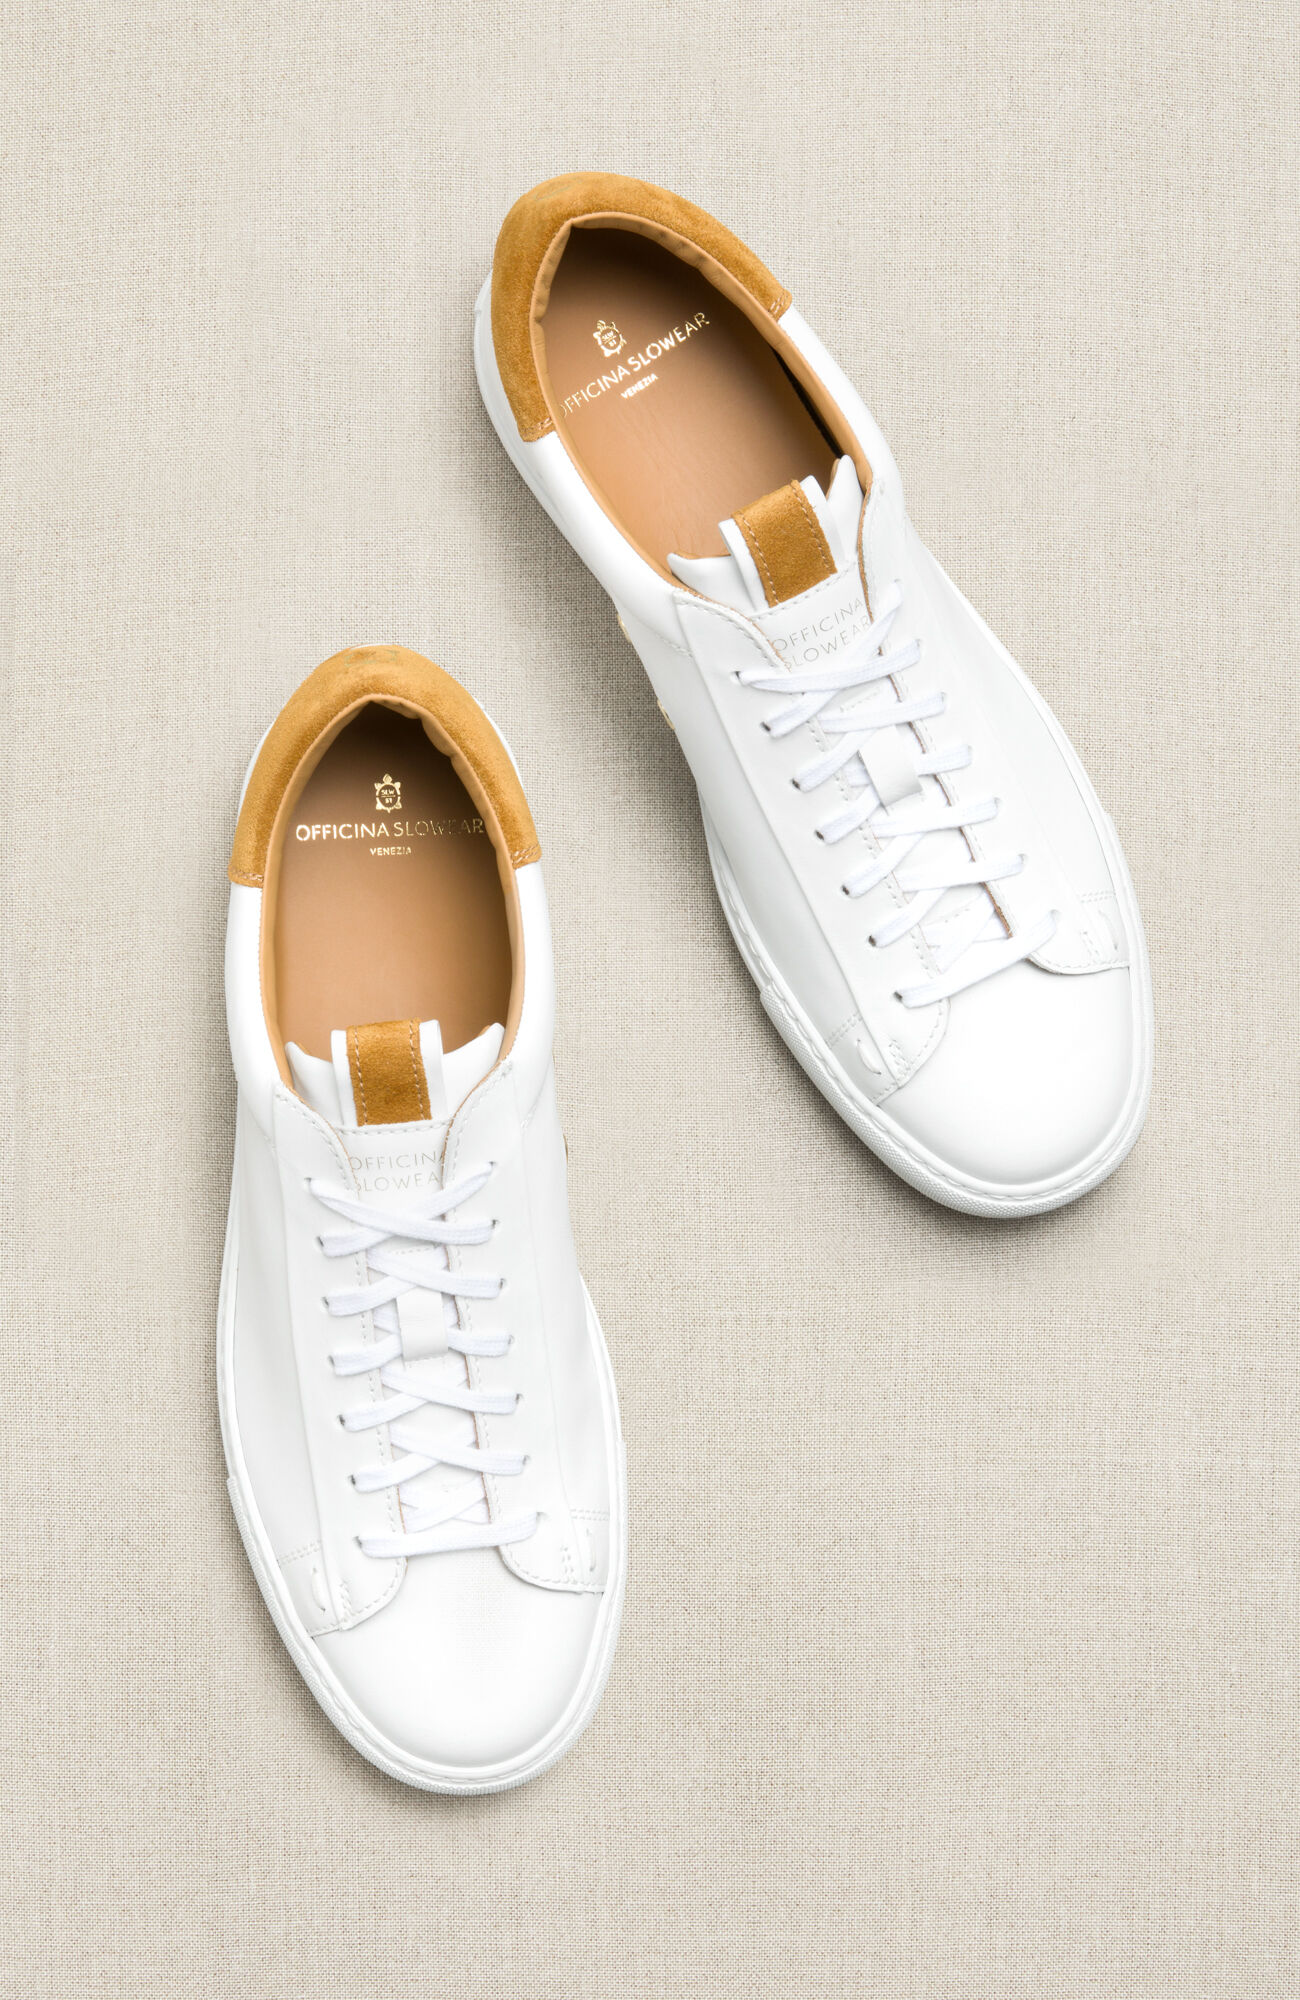 Leather trainers with mustard yellow